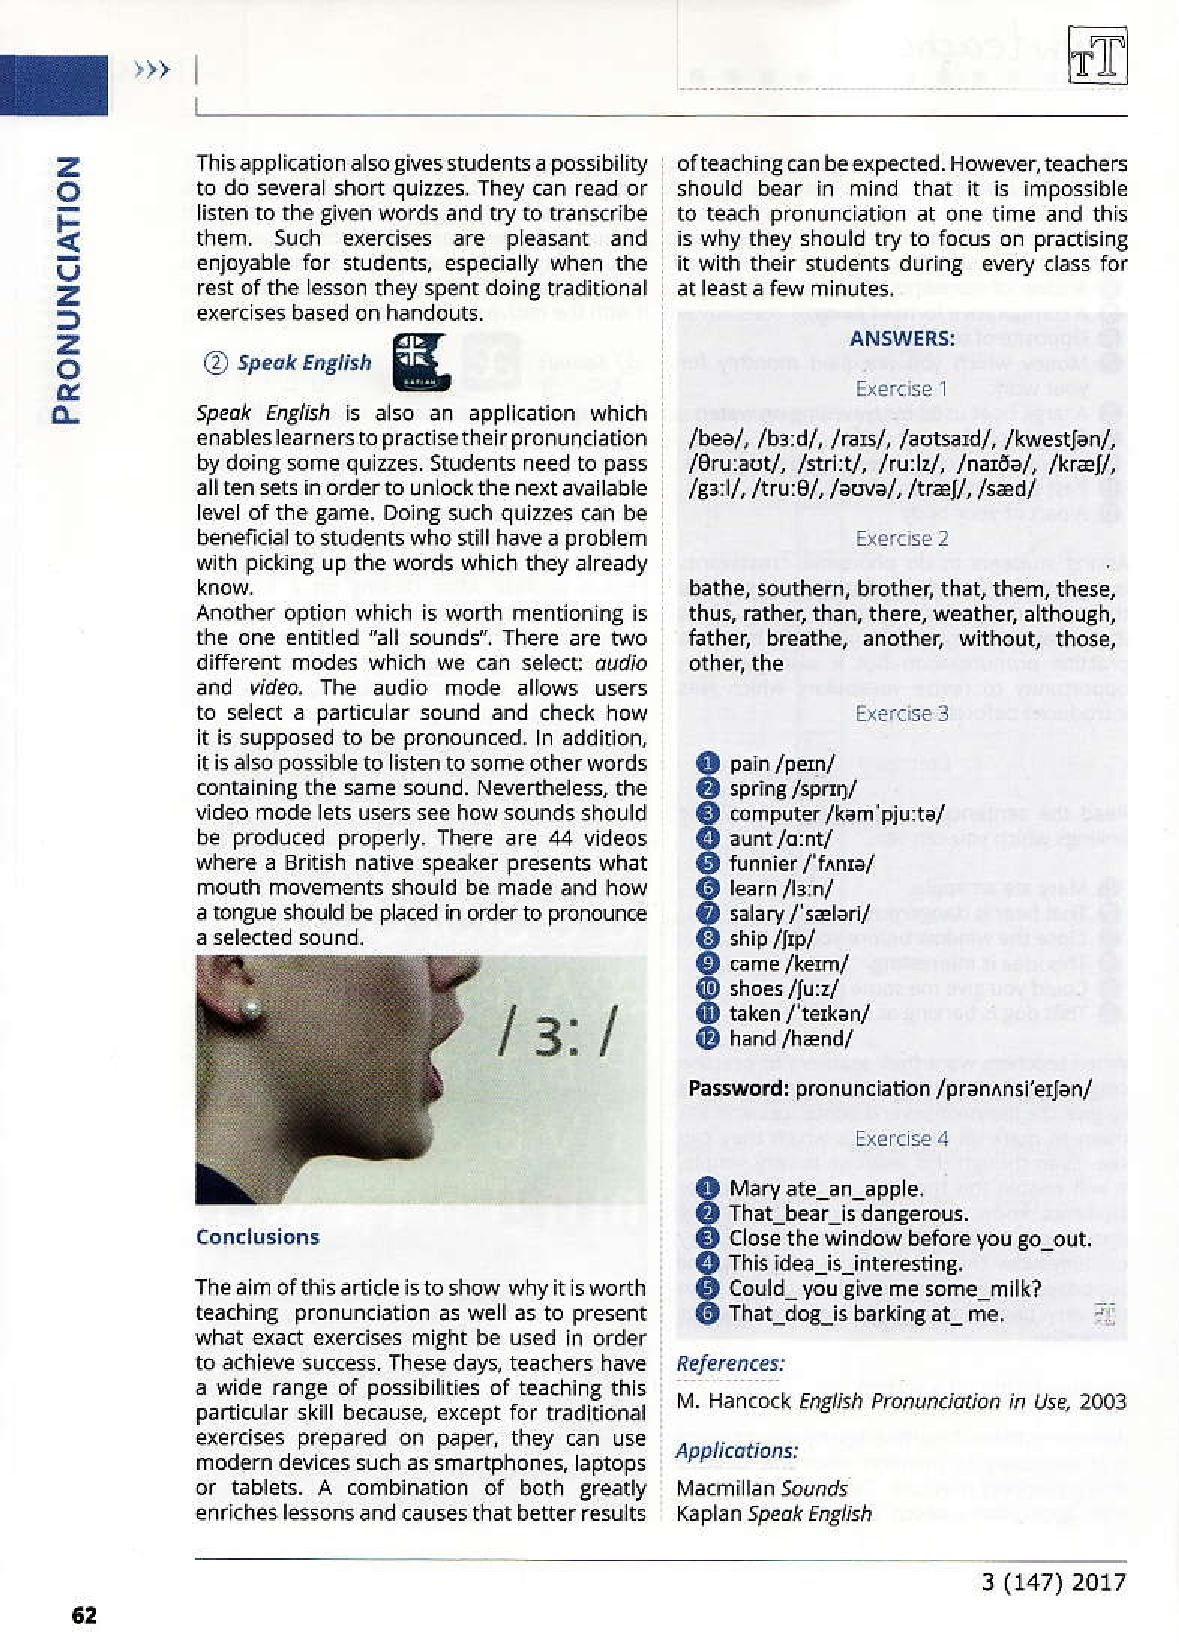 Article: Pronunciation - paper and screen